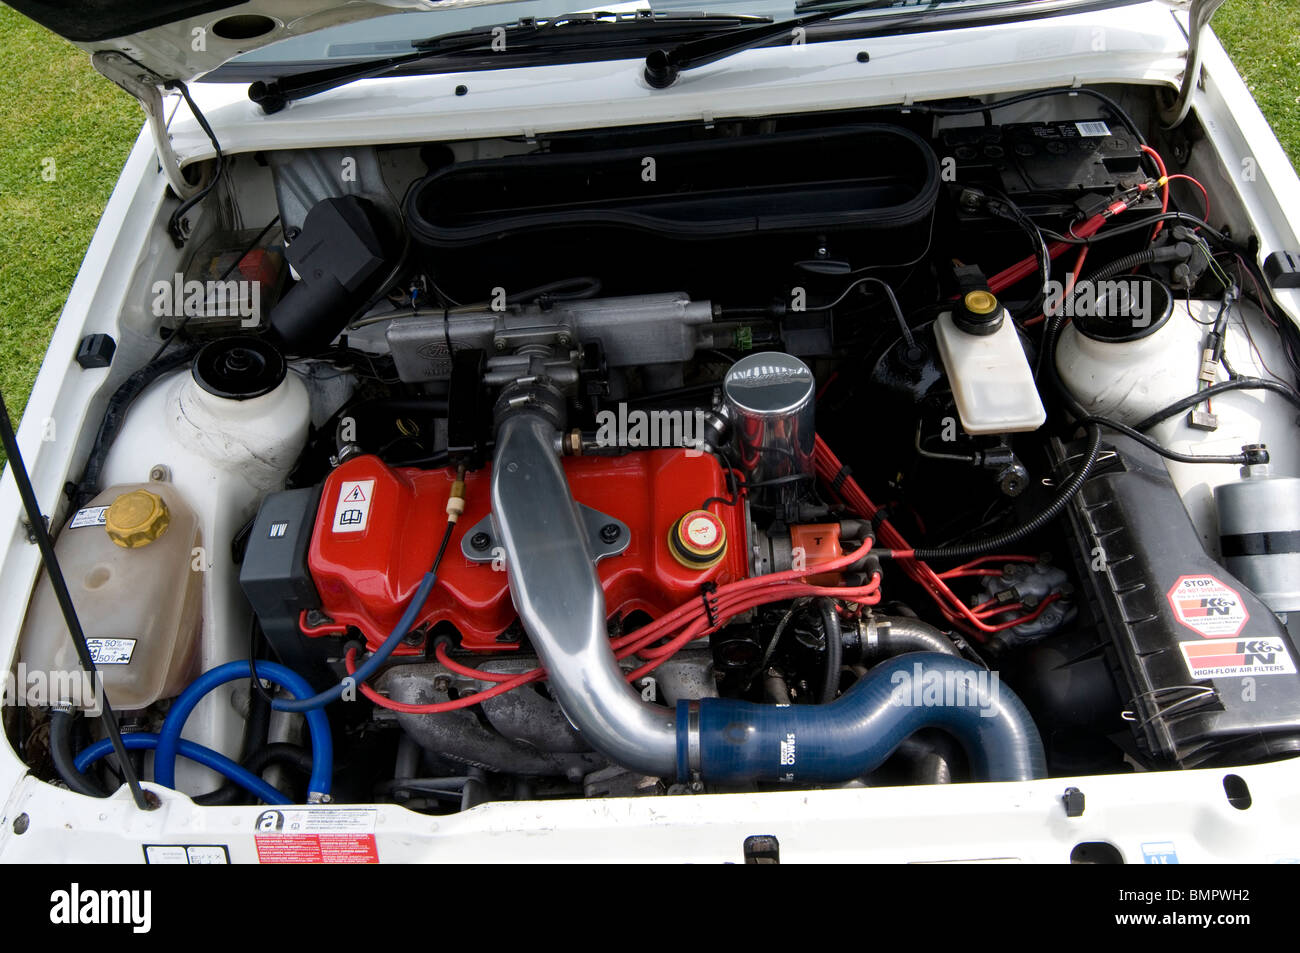 ford escort rs turbo engine bay high performance stock photo 30006510 alamy. Black Bedroom Furniture Sets. Home Design Ideas